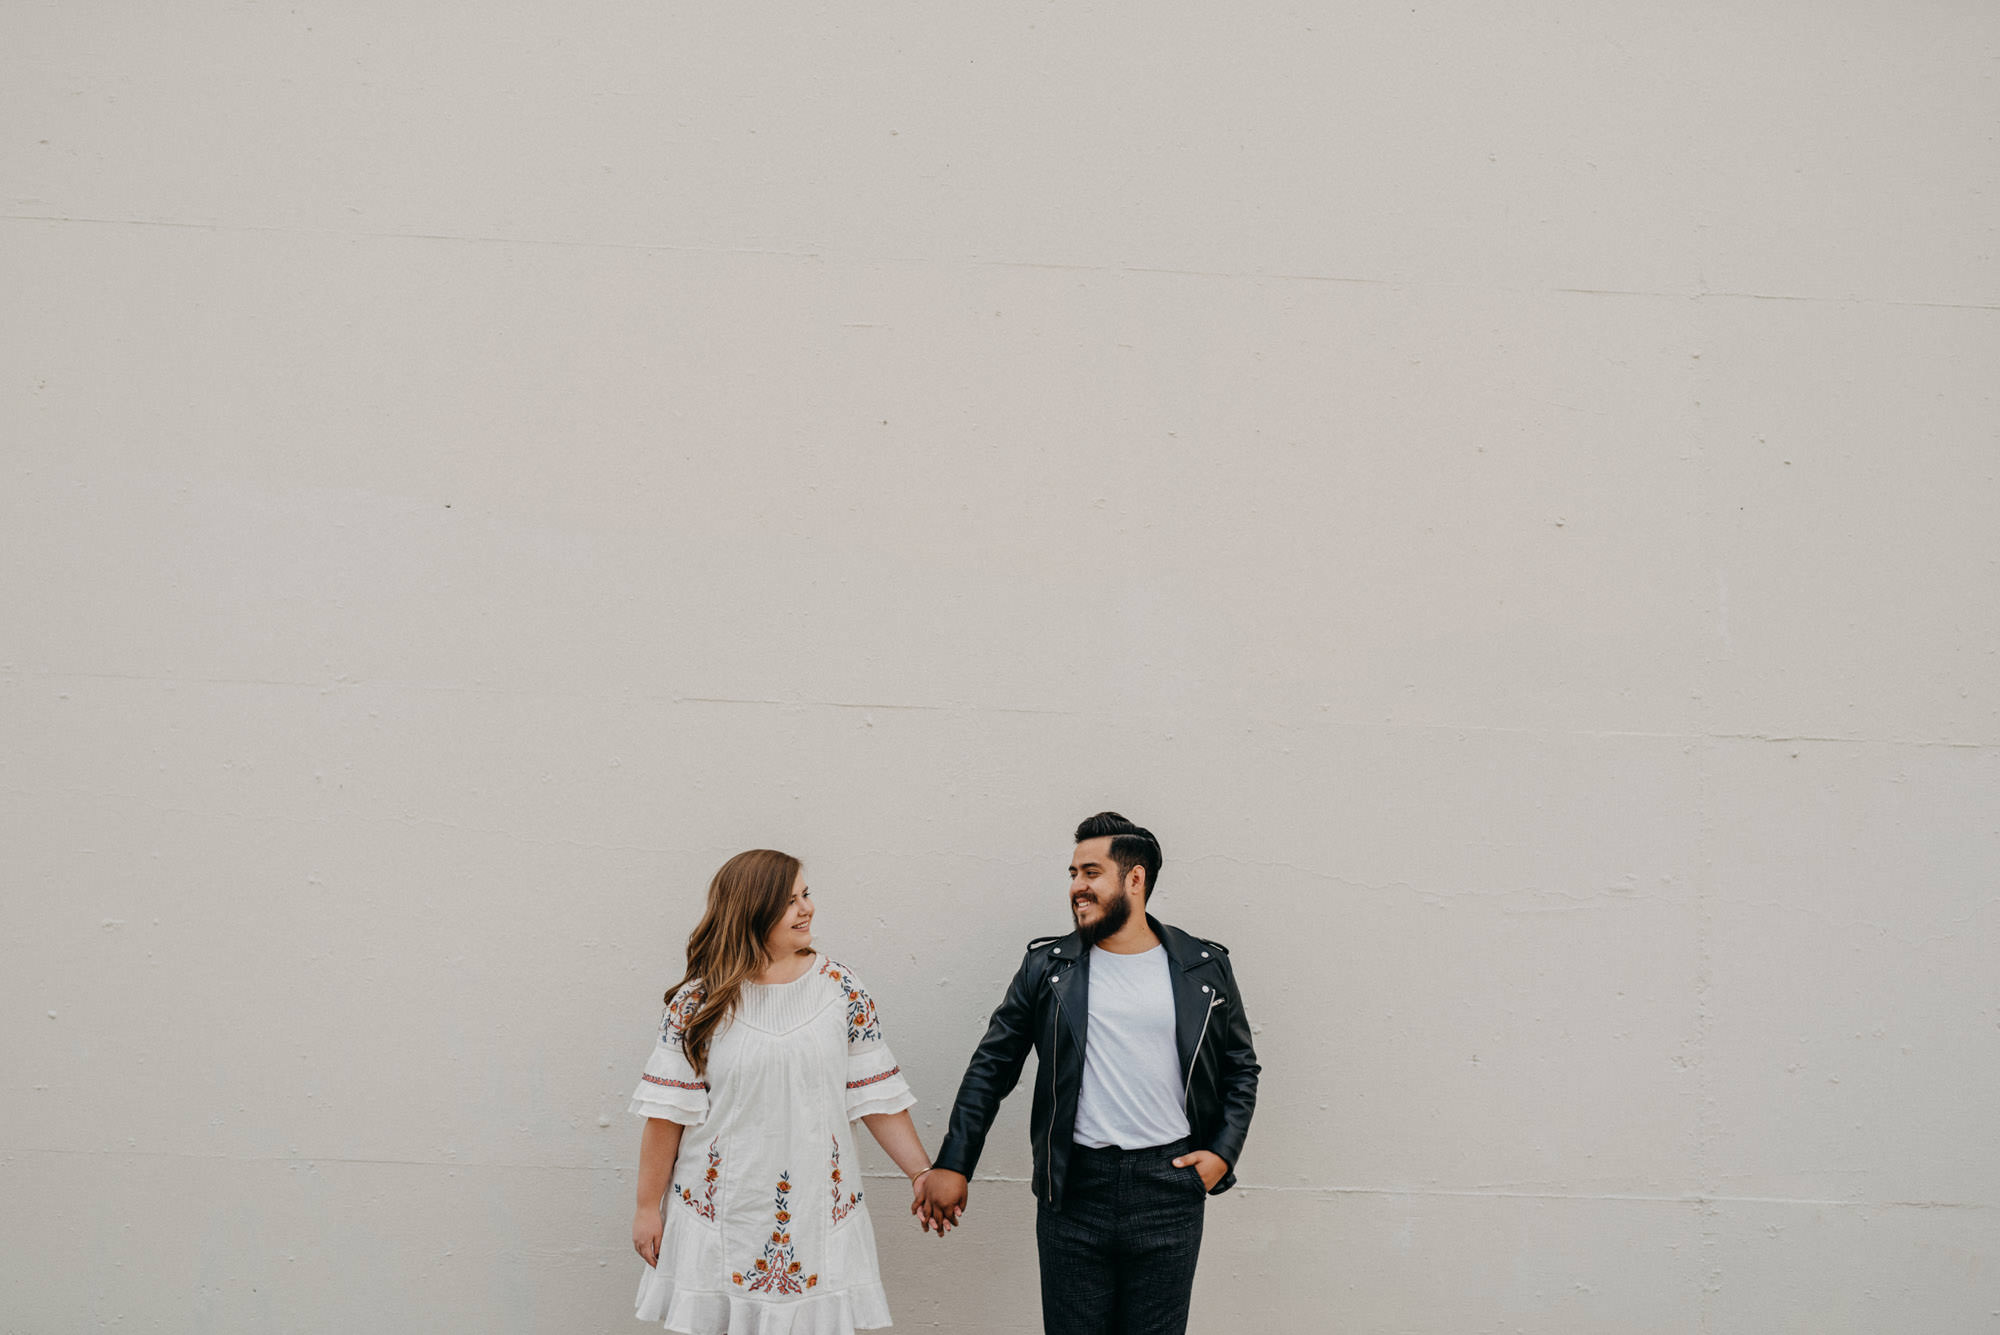 federico-portland-engagement-industrial-white-wall-4727.jpg